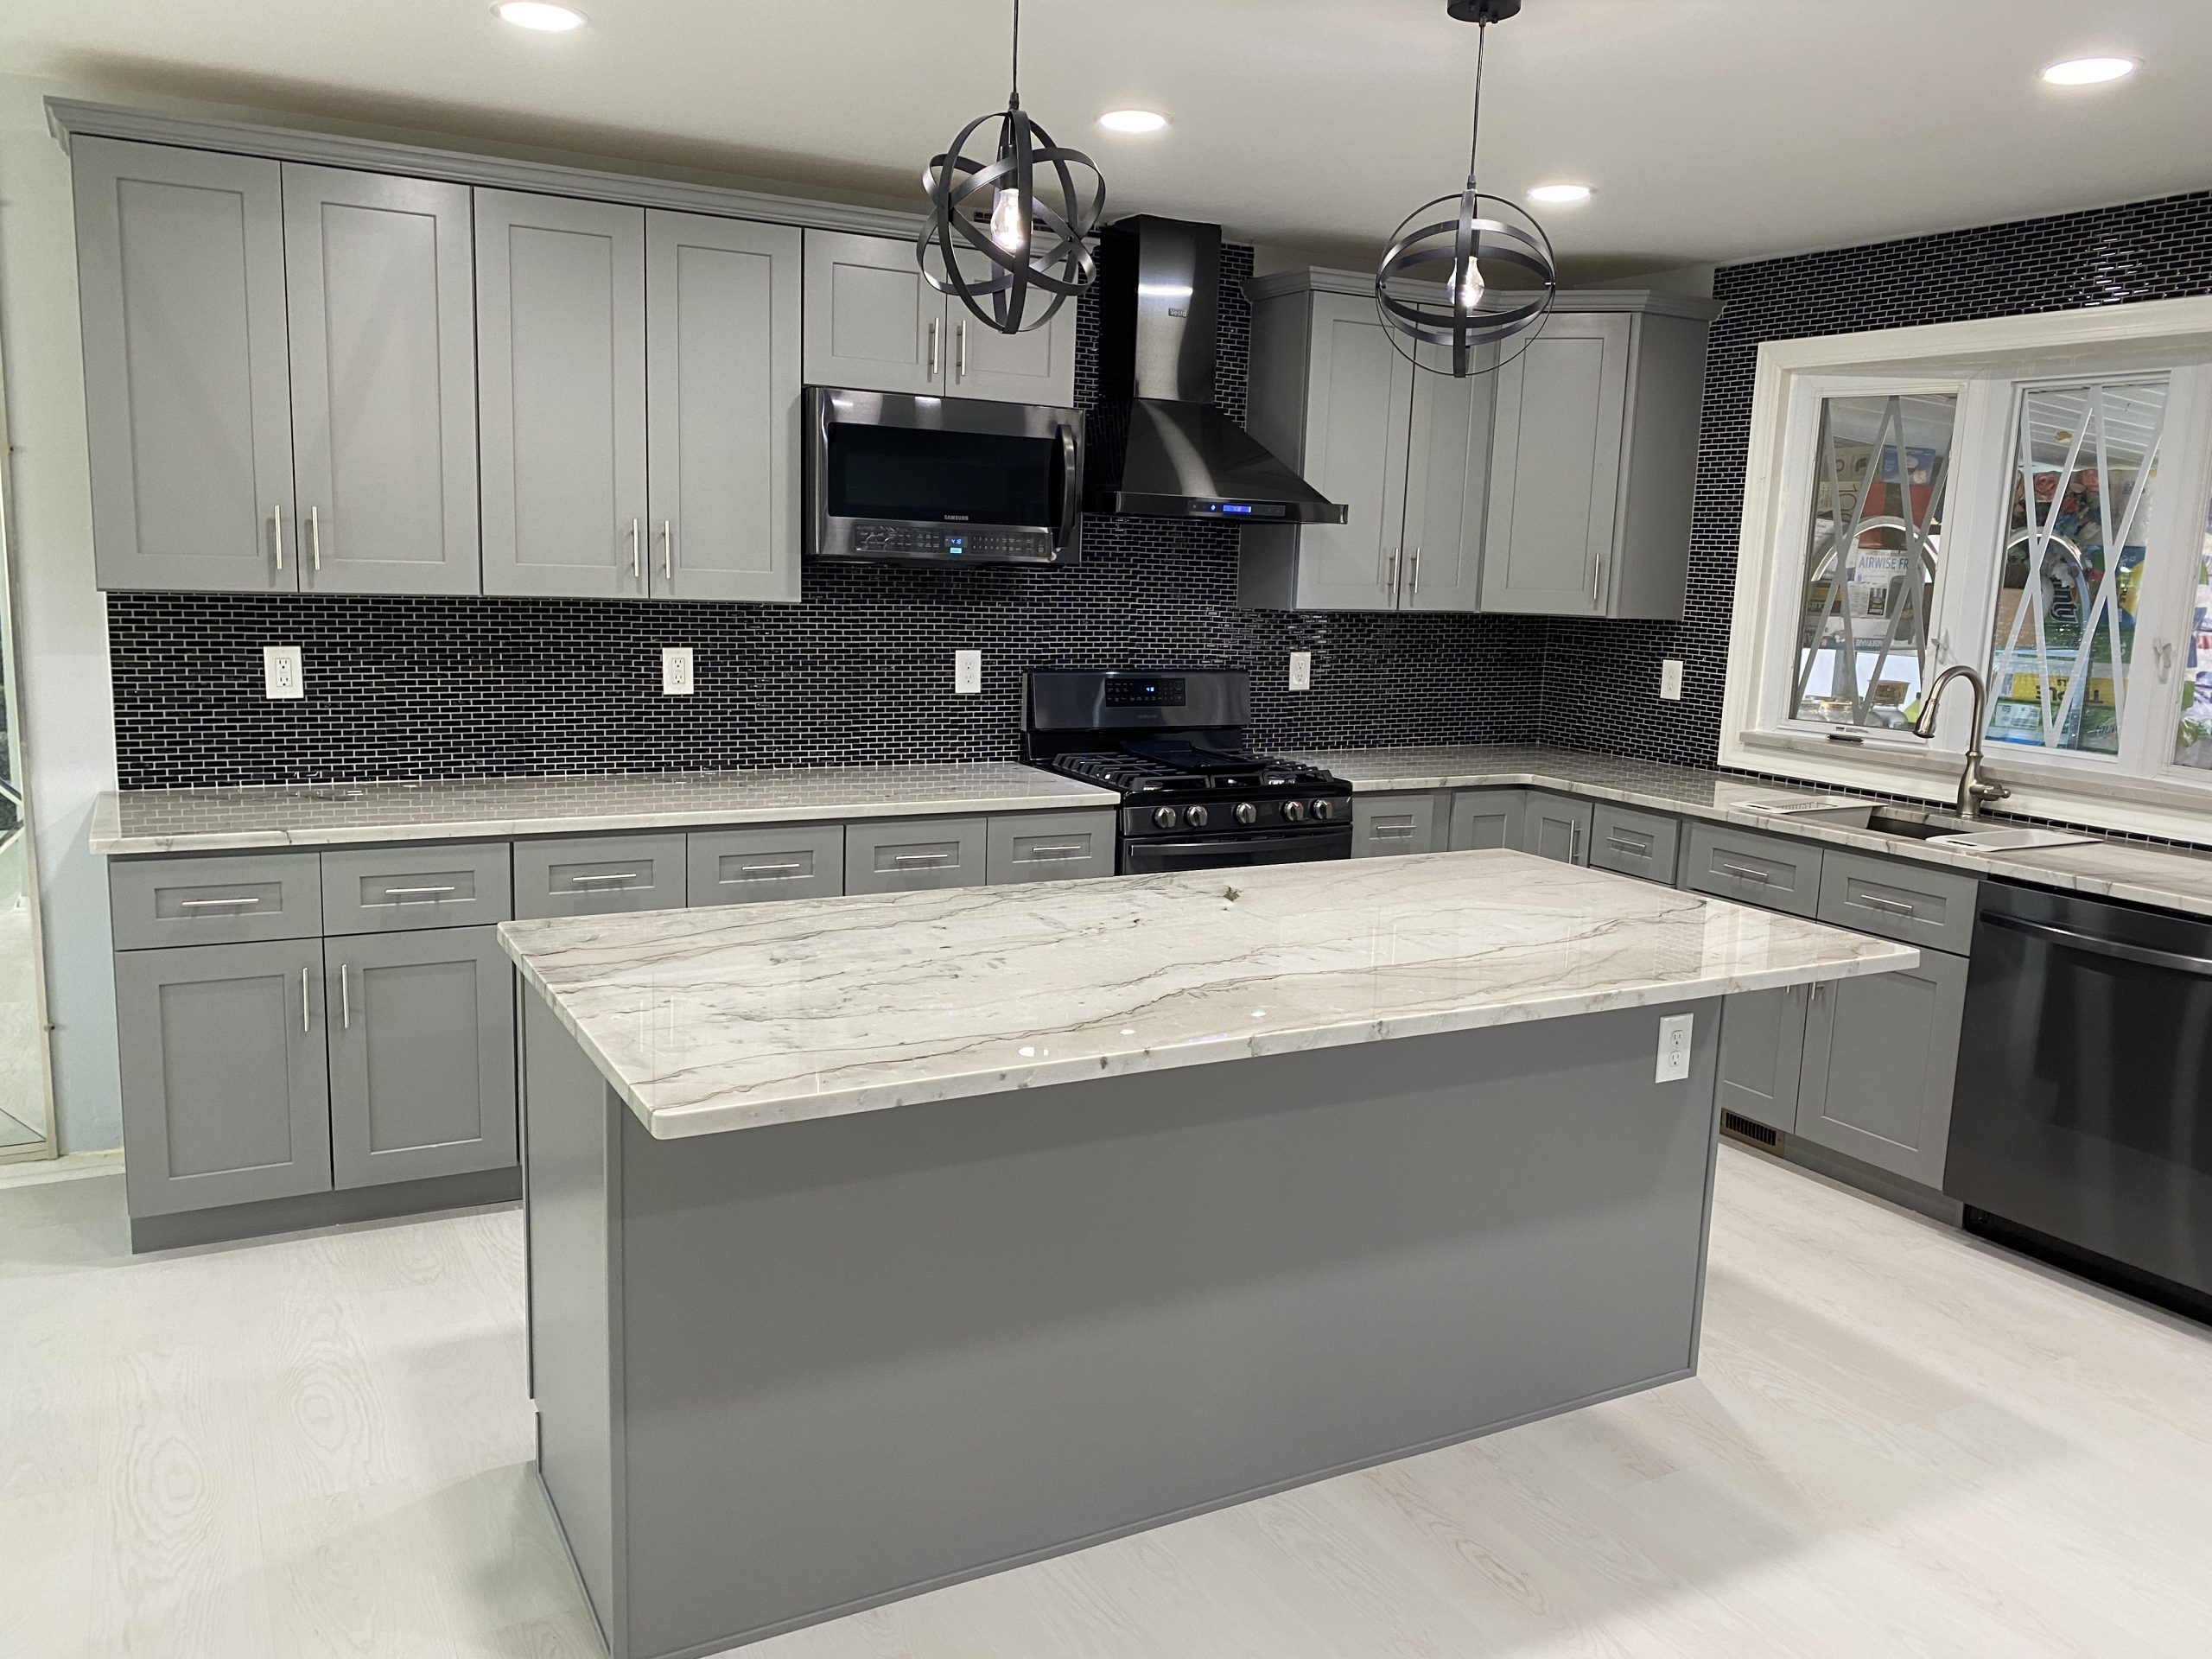 kitchen-design in Havertown PA